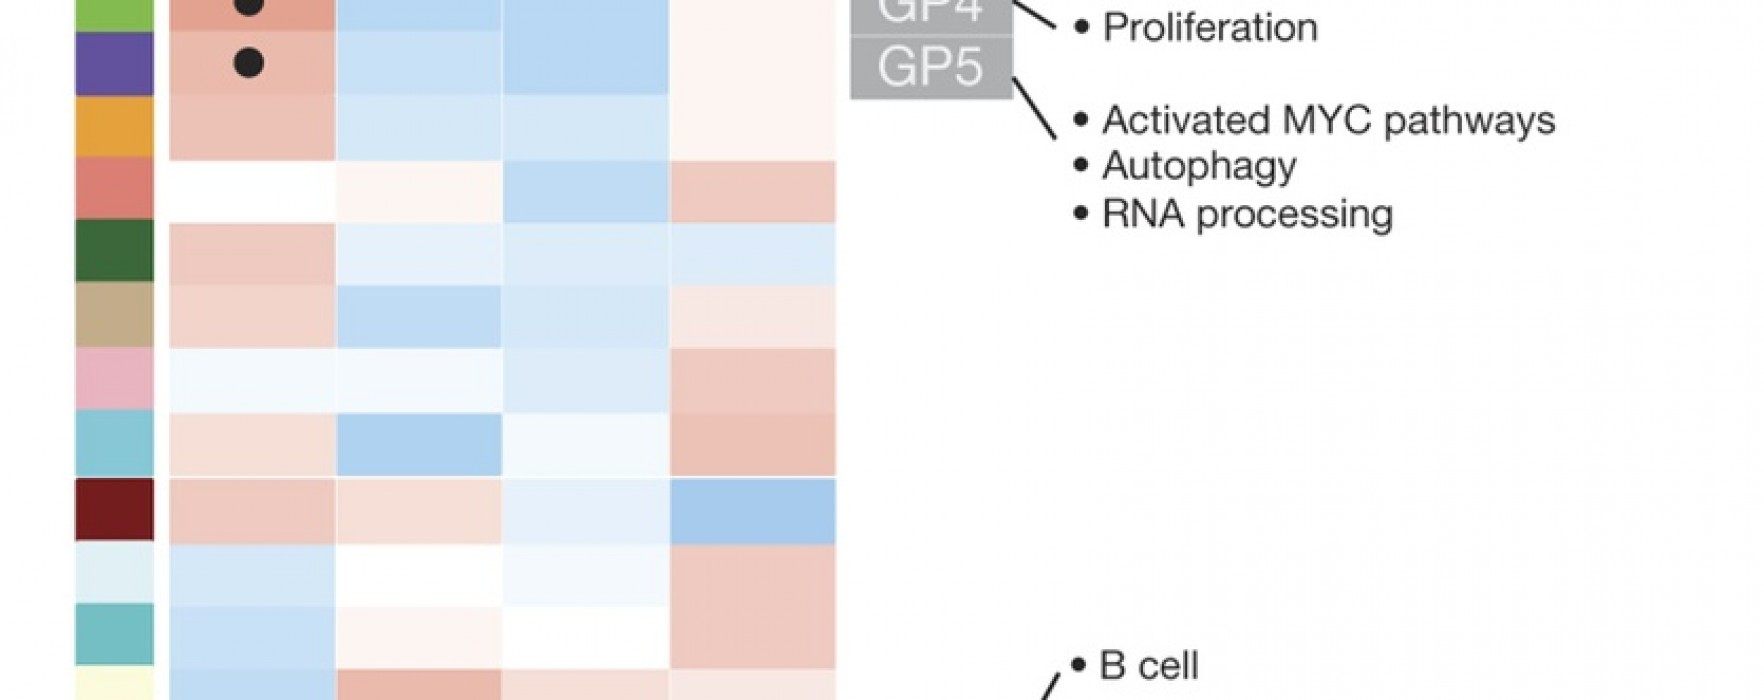 Molecular Subtypes of Pancreatic Cancer Identified